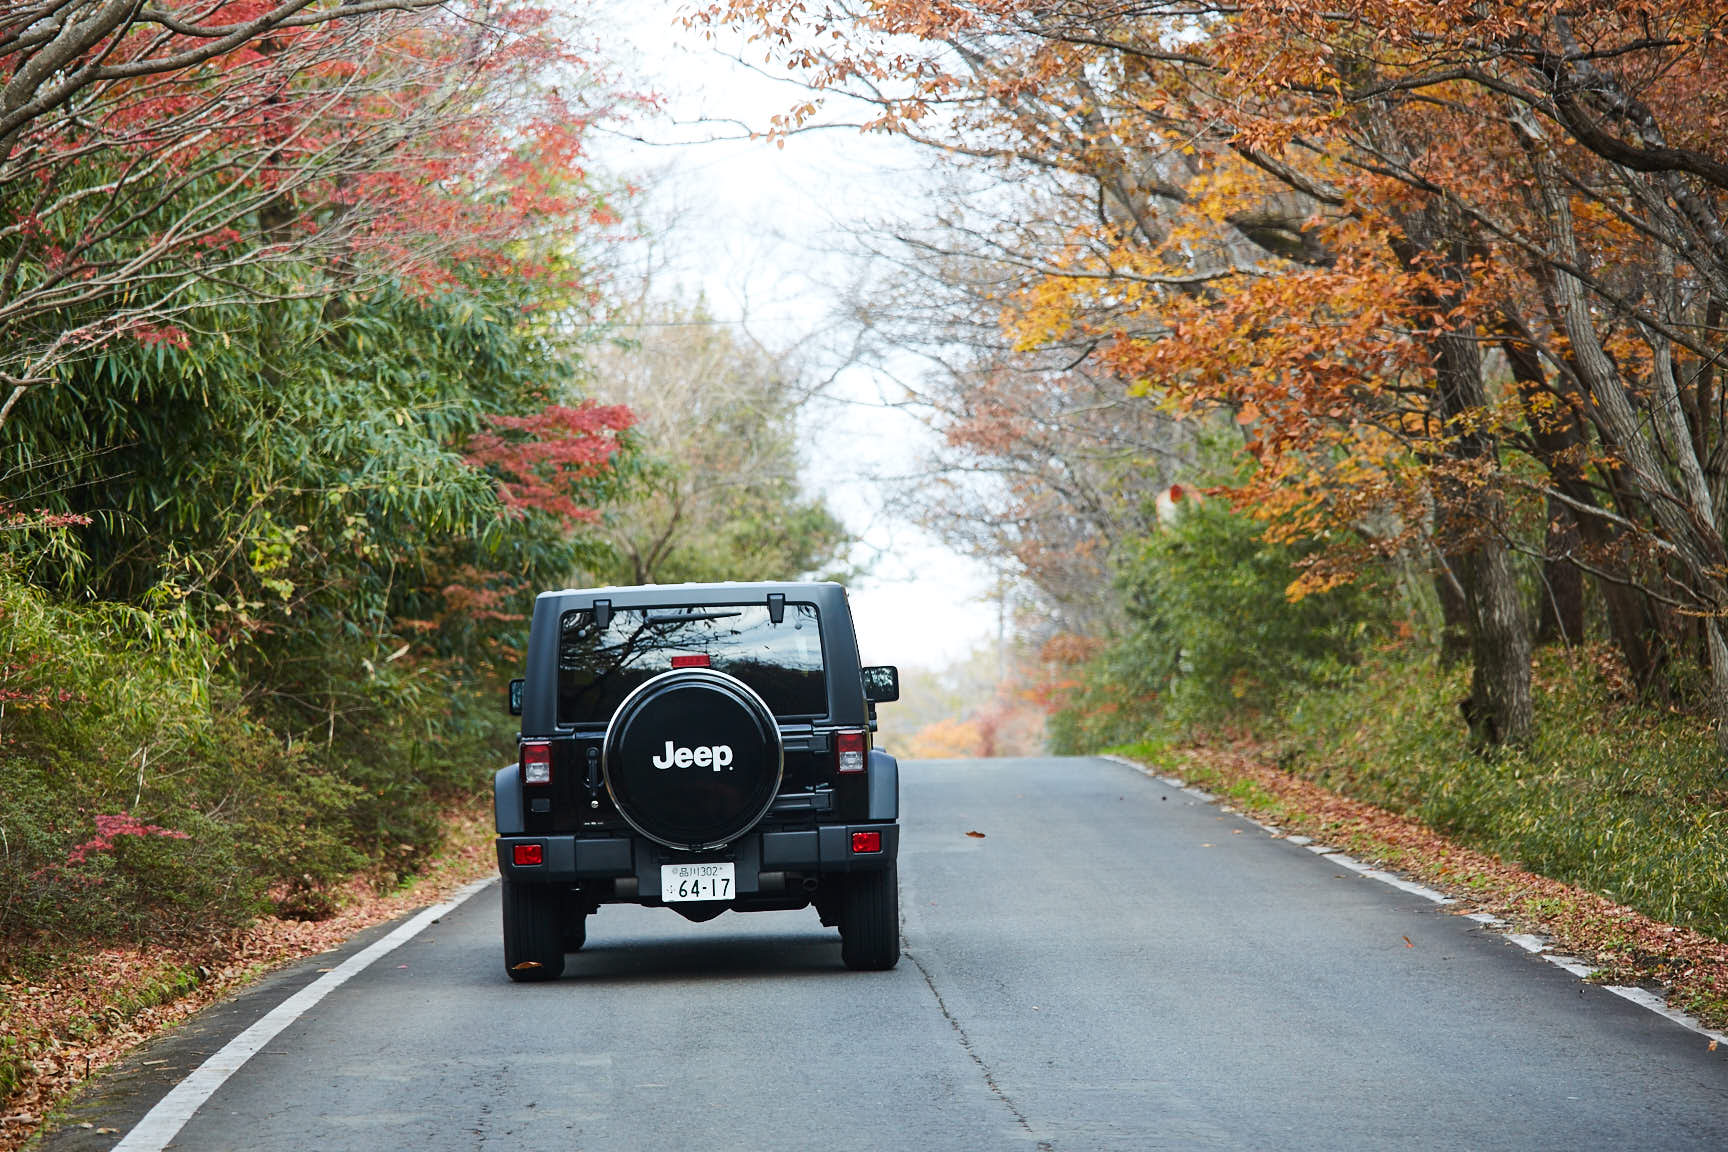 aj_247 My Jeep®,My Life. ボクとJeep®の暮らしかた。シェフ・相場正一郎